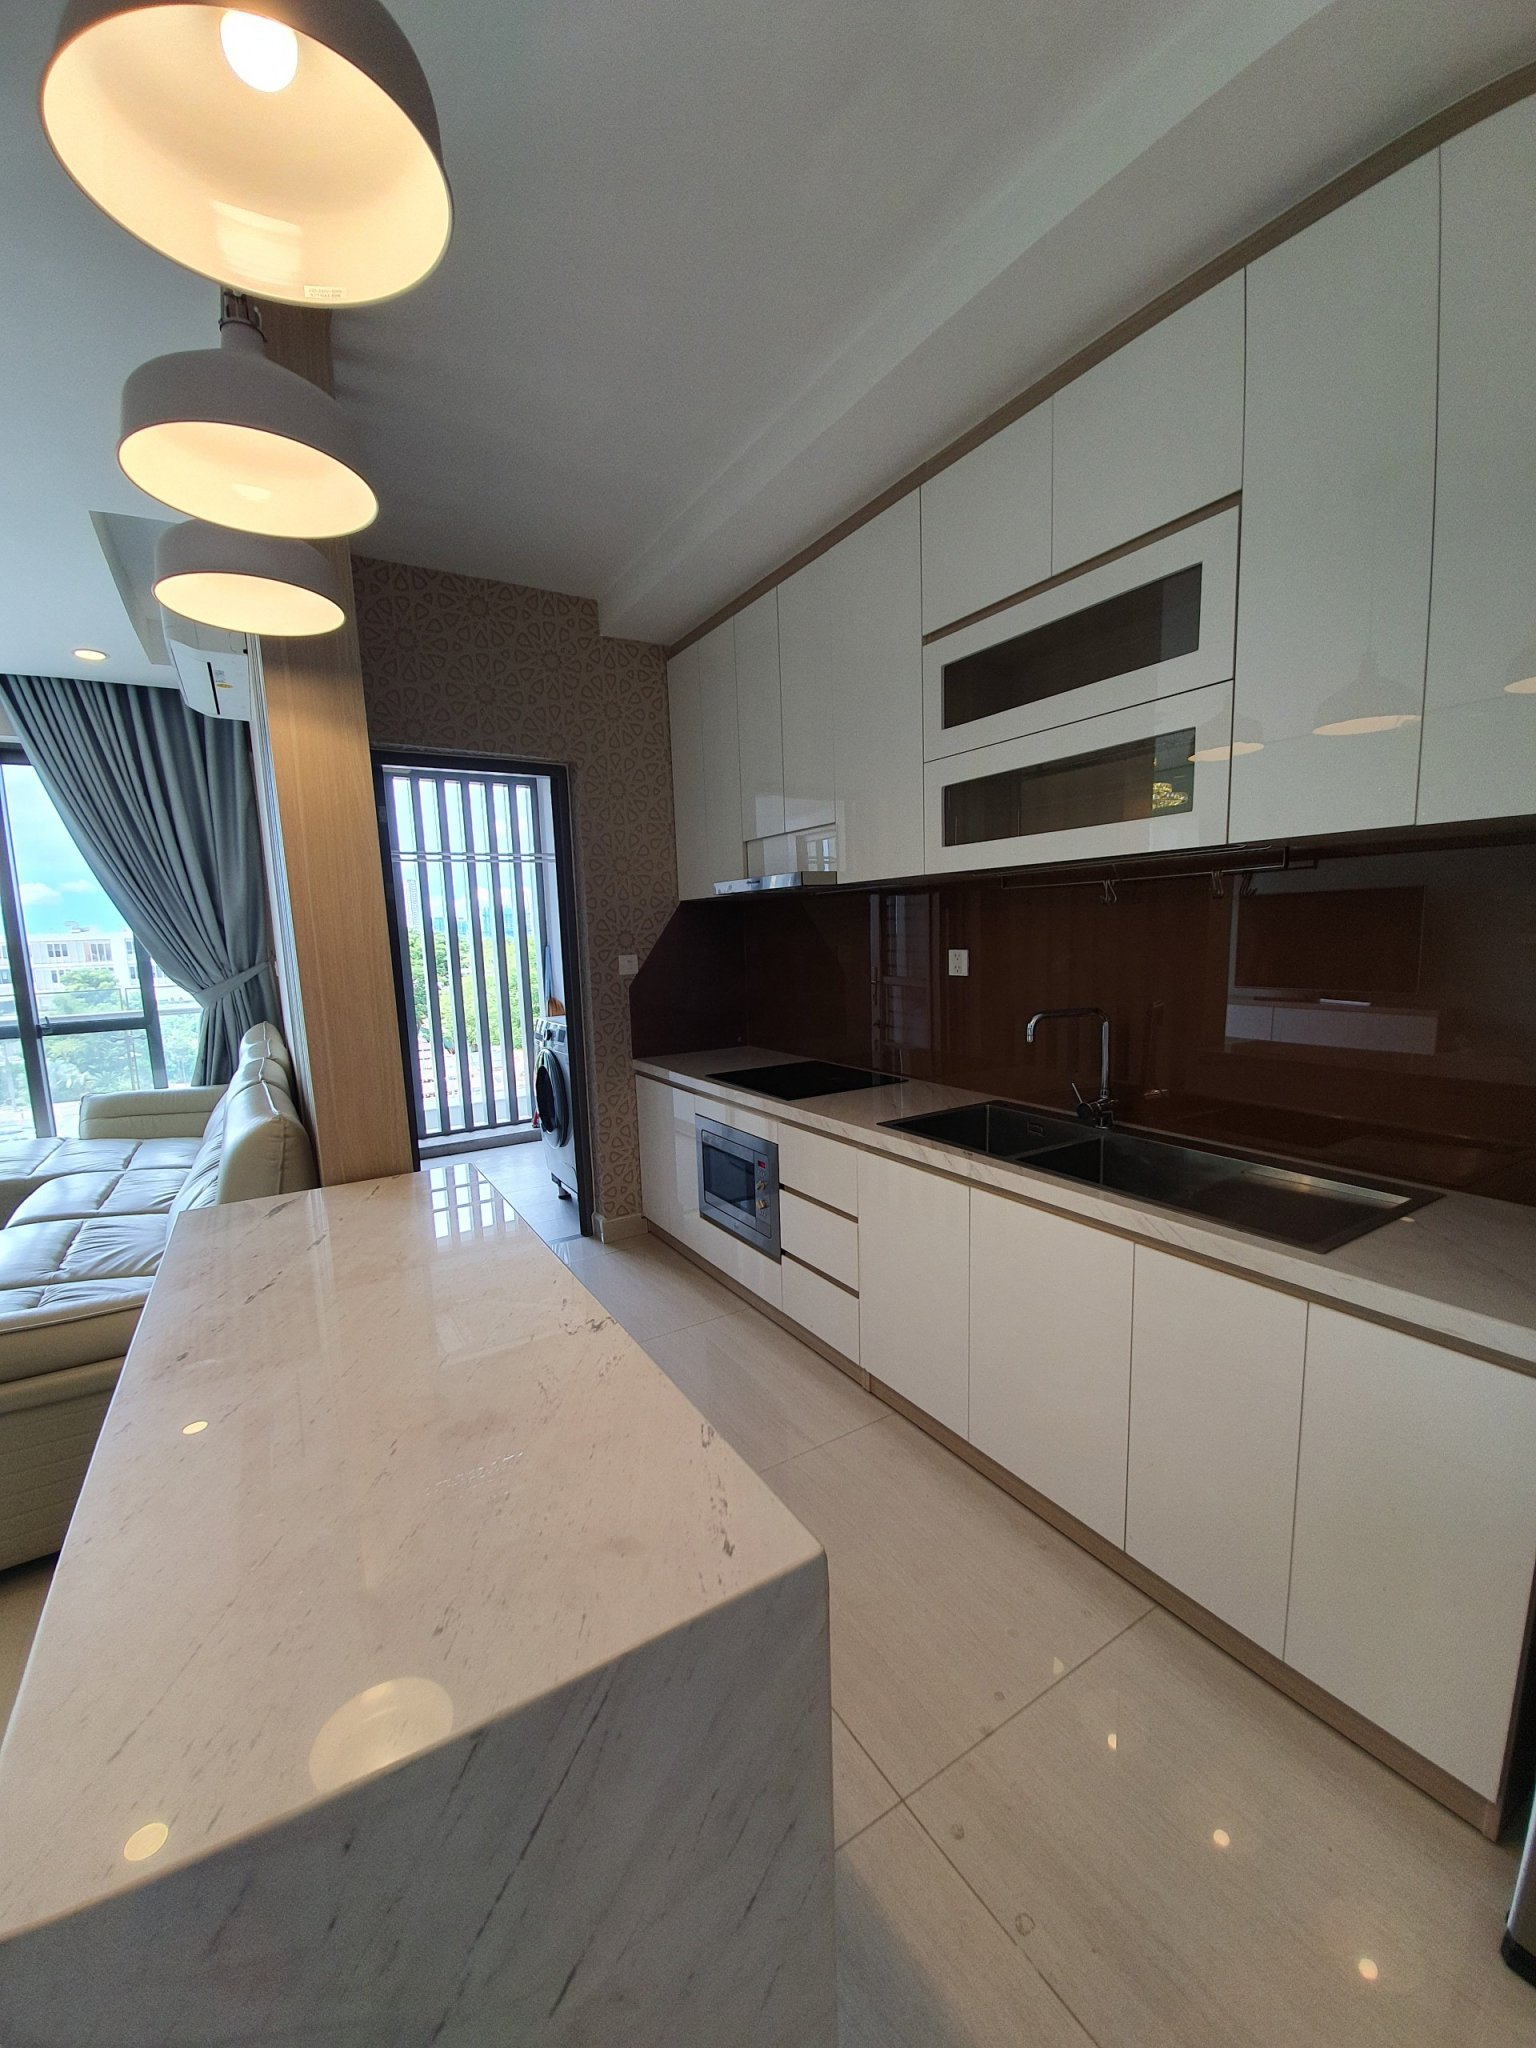 apartment-for-rent-in river-park premier-phu-my-hung-district- 7-luxury interior